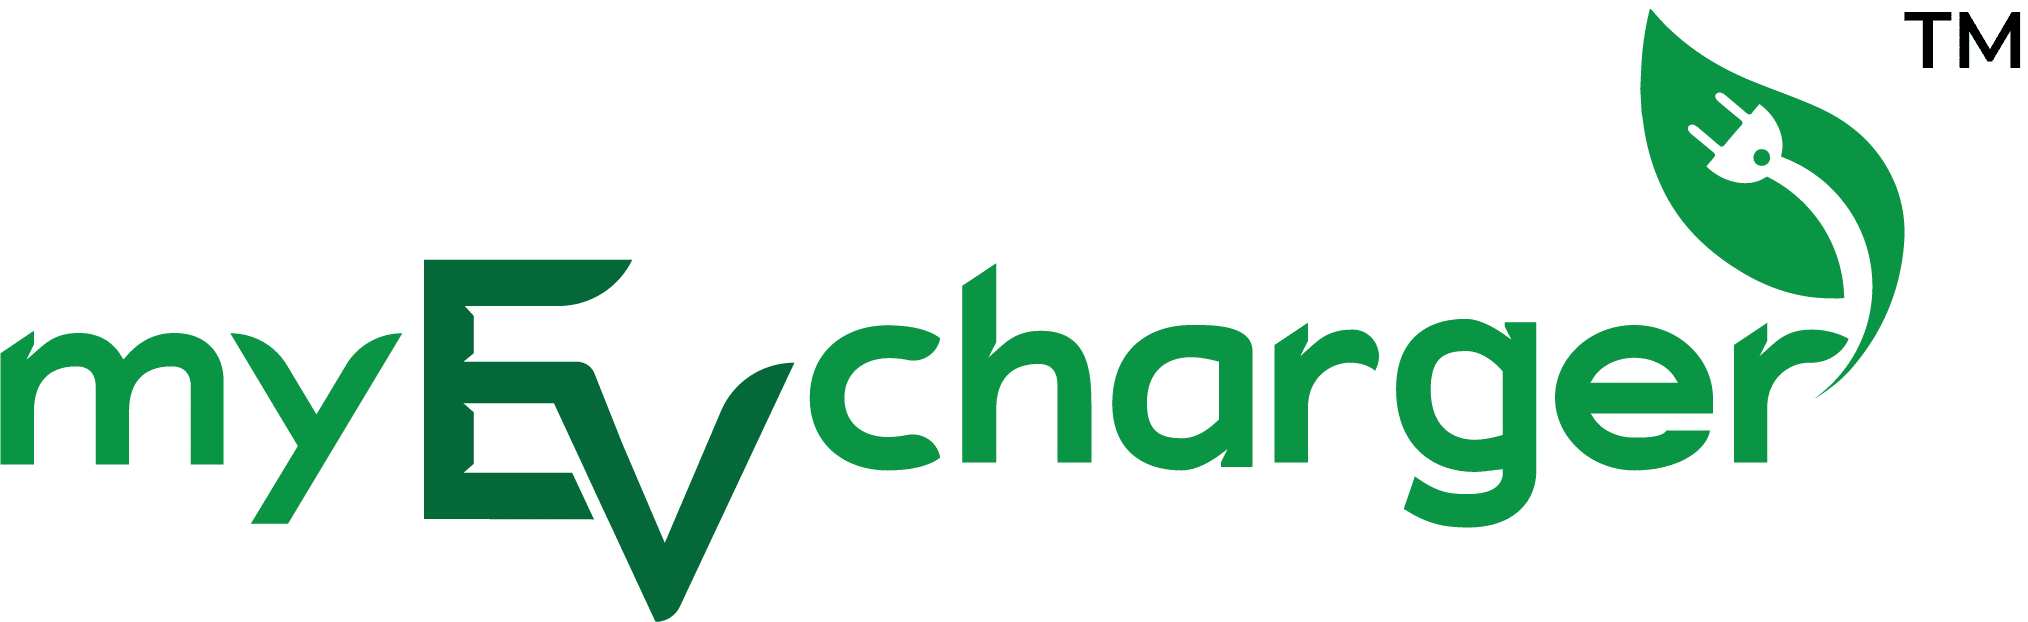 myEVcharger | The Electric Revolution is Here